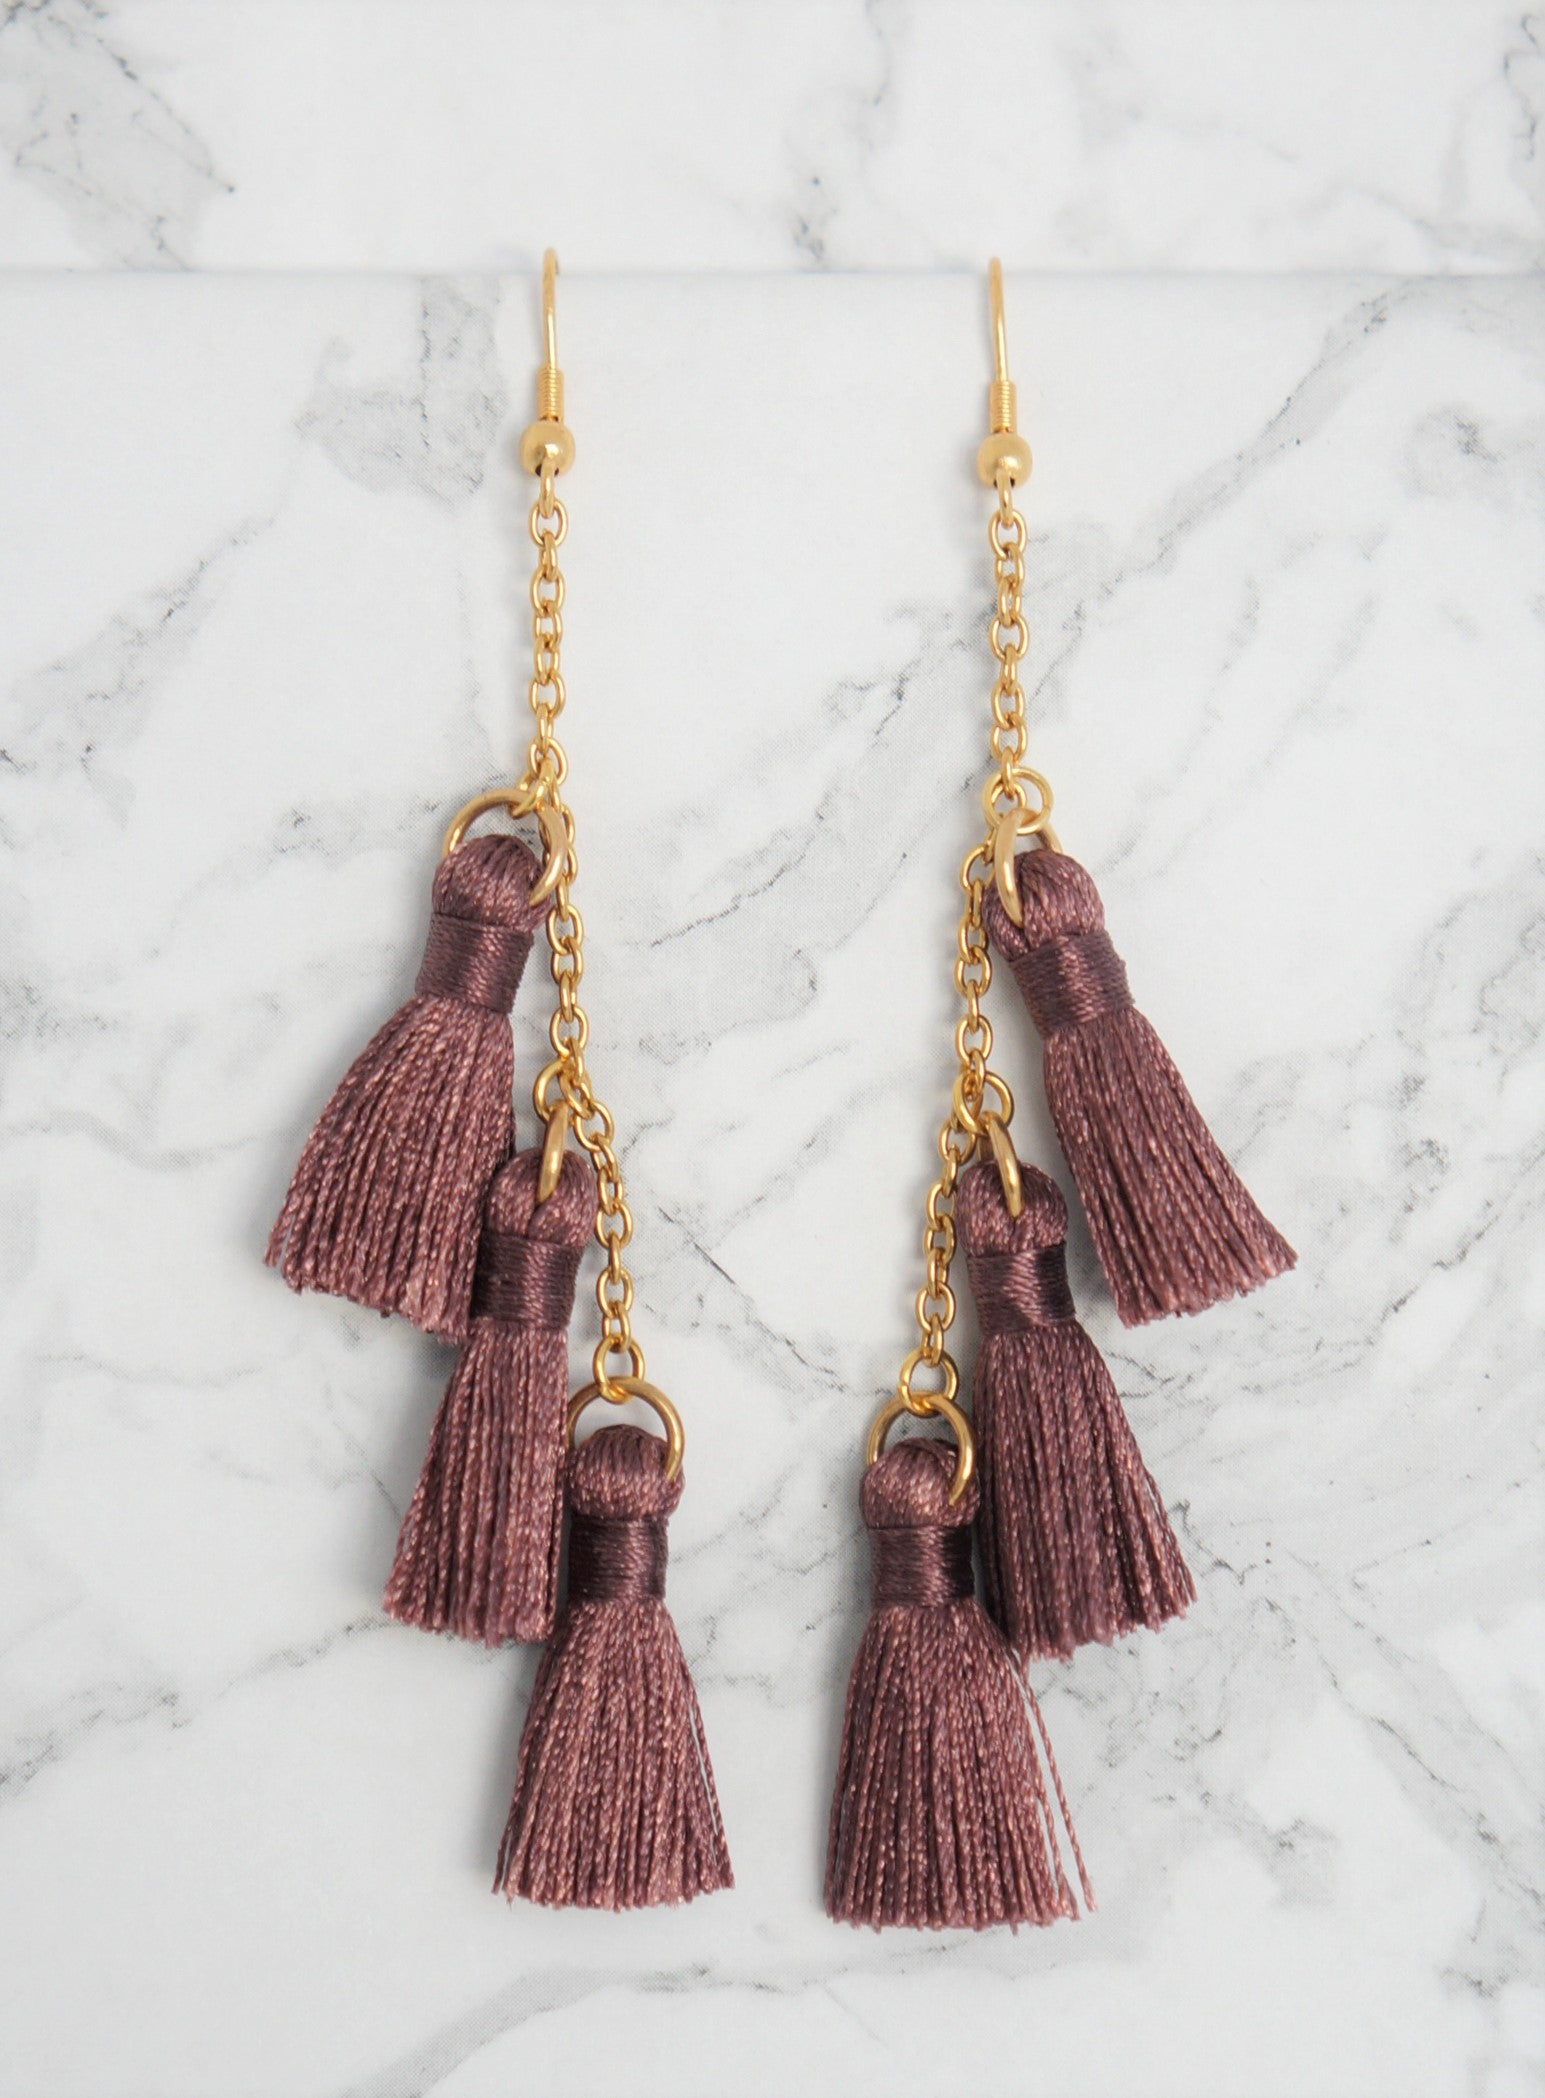 Divine Earrings - Carolyn Hearn Designs